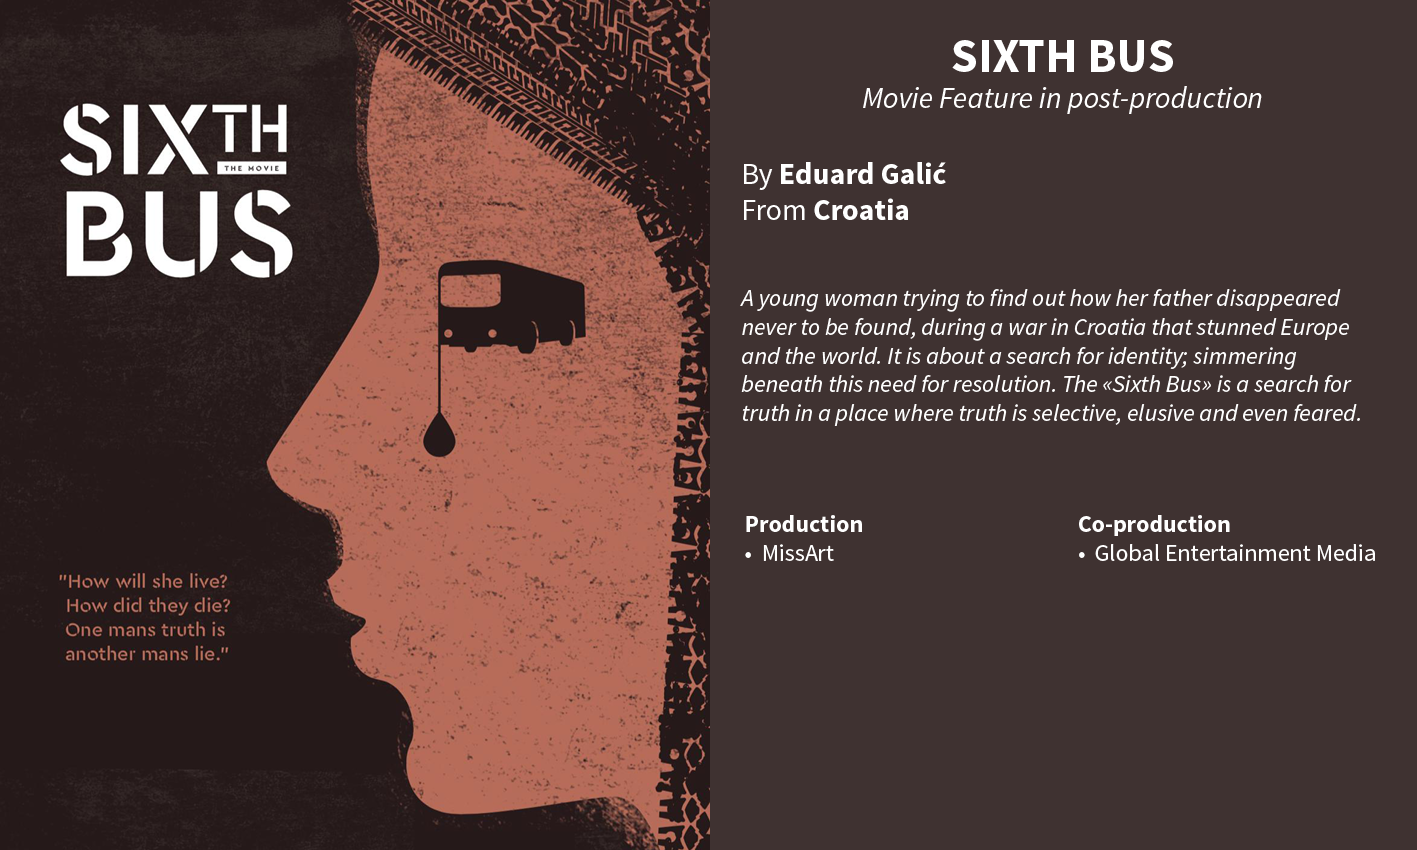 Sixth Bus, Eduard Galic